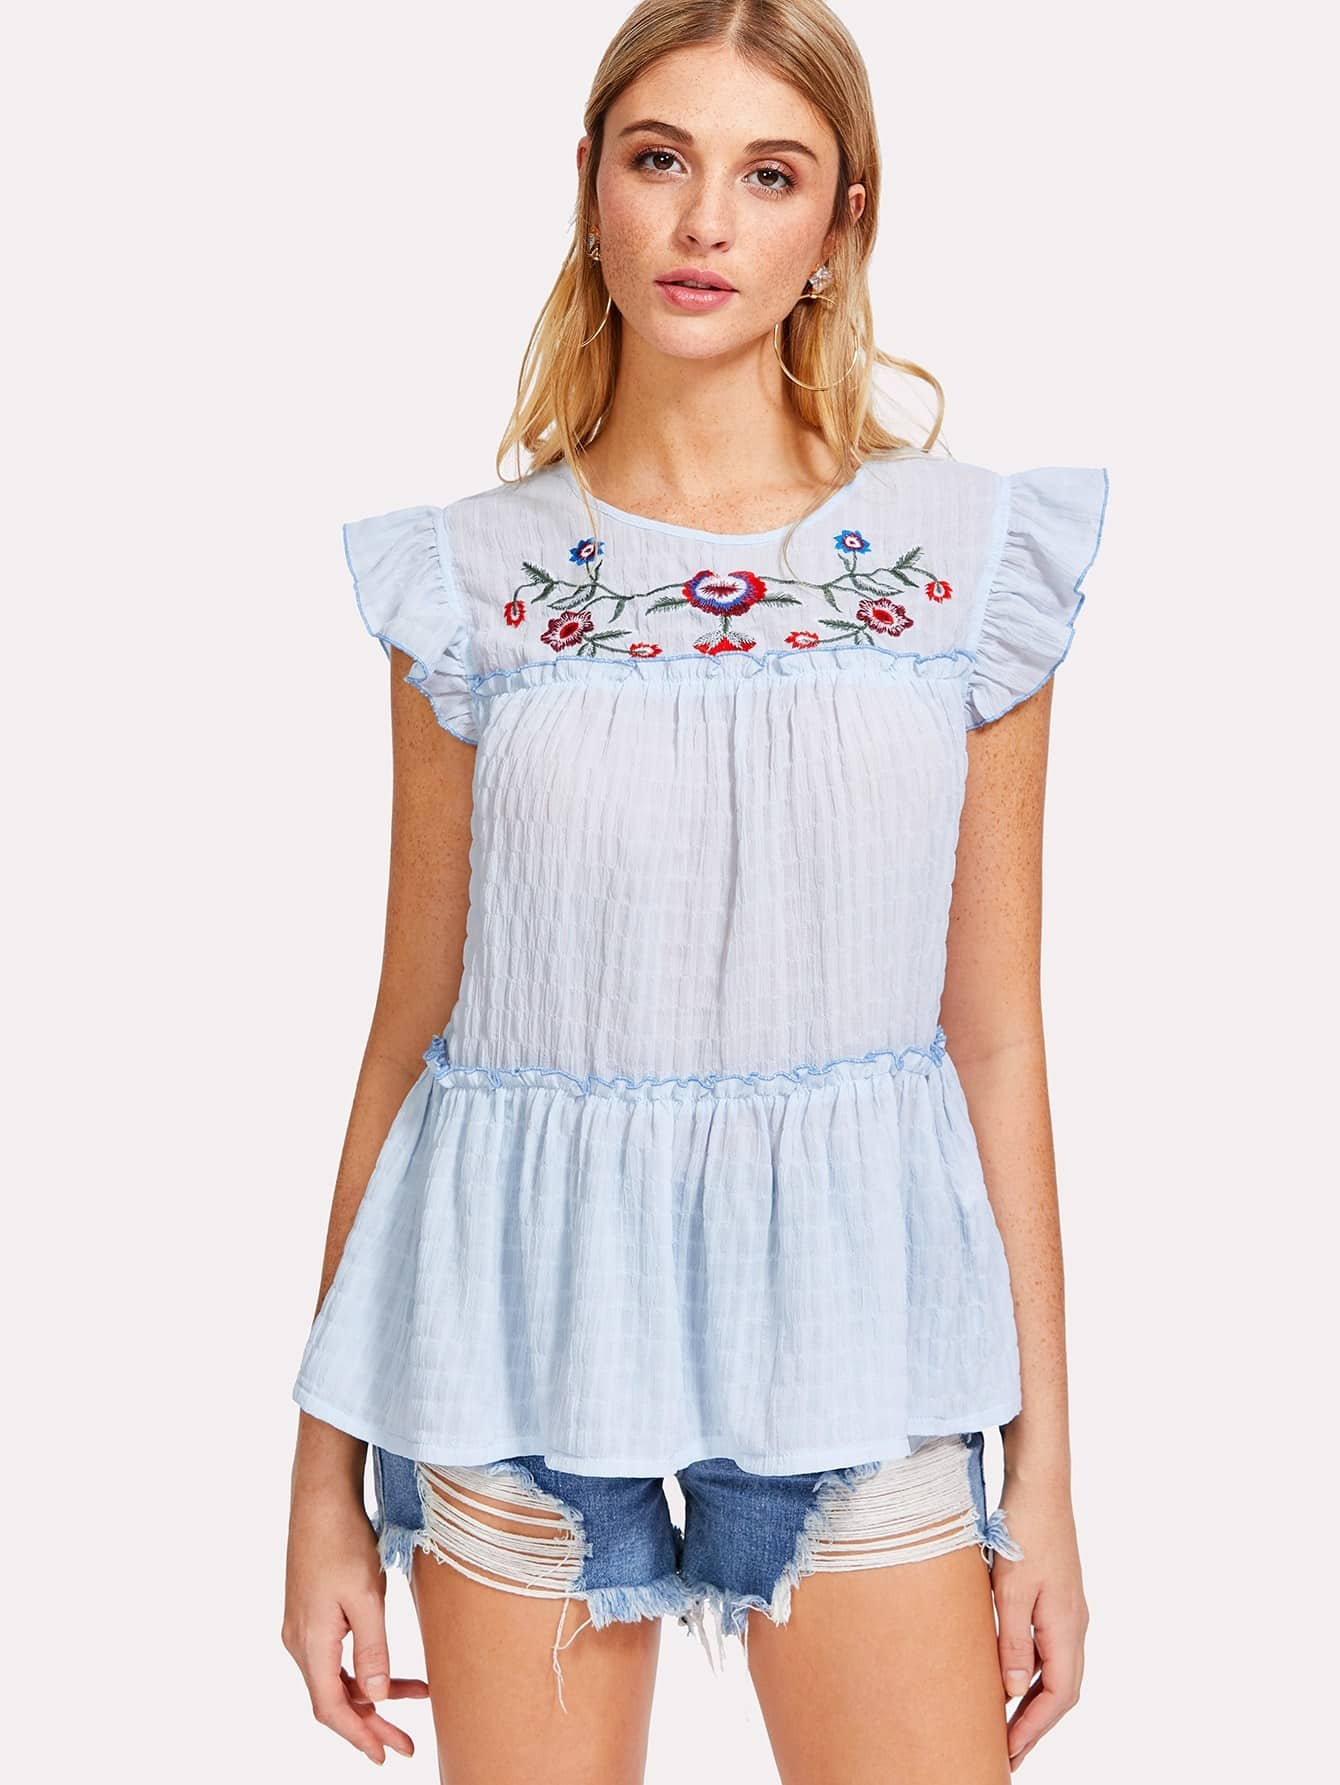 Embroidered Yoke Frilled Babydoll Top frilled collar lace yoke sleeveless top